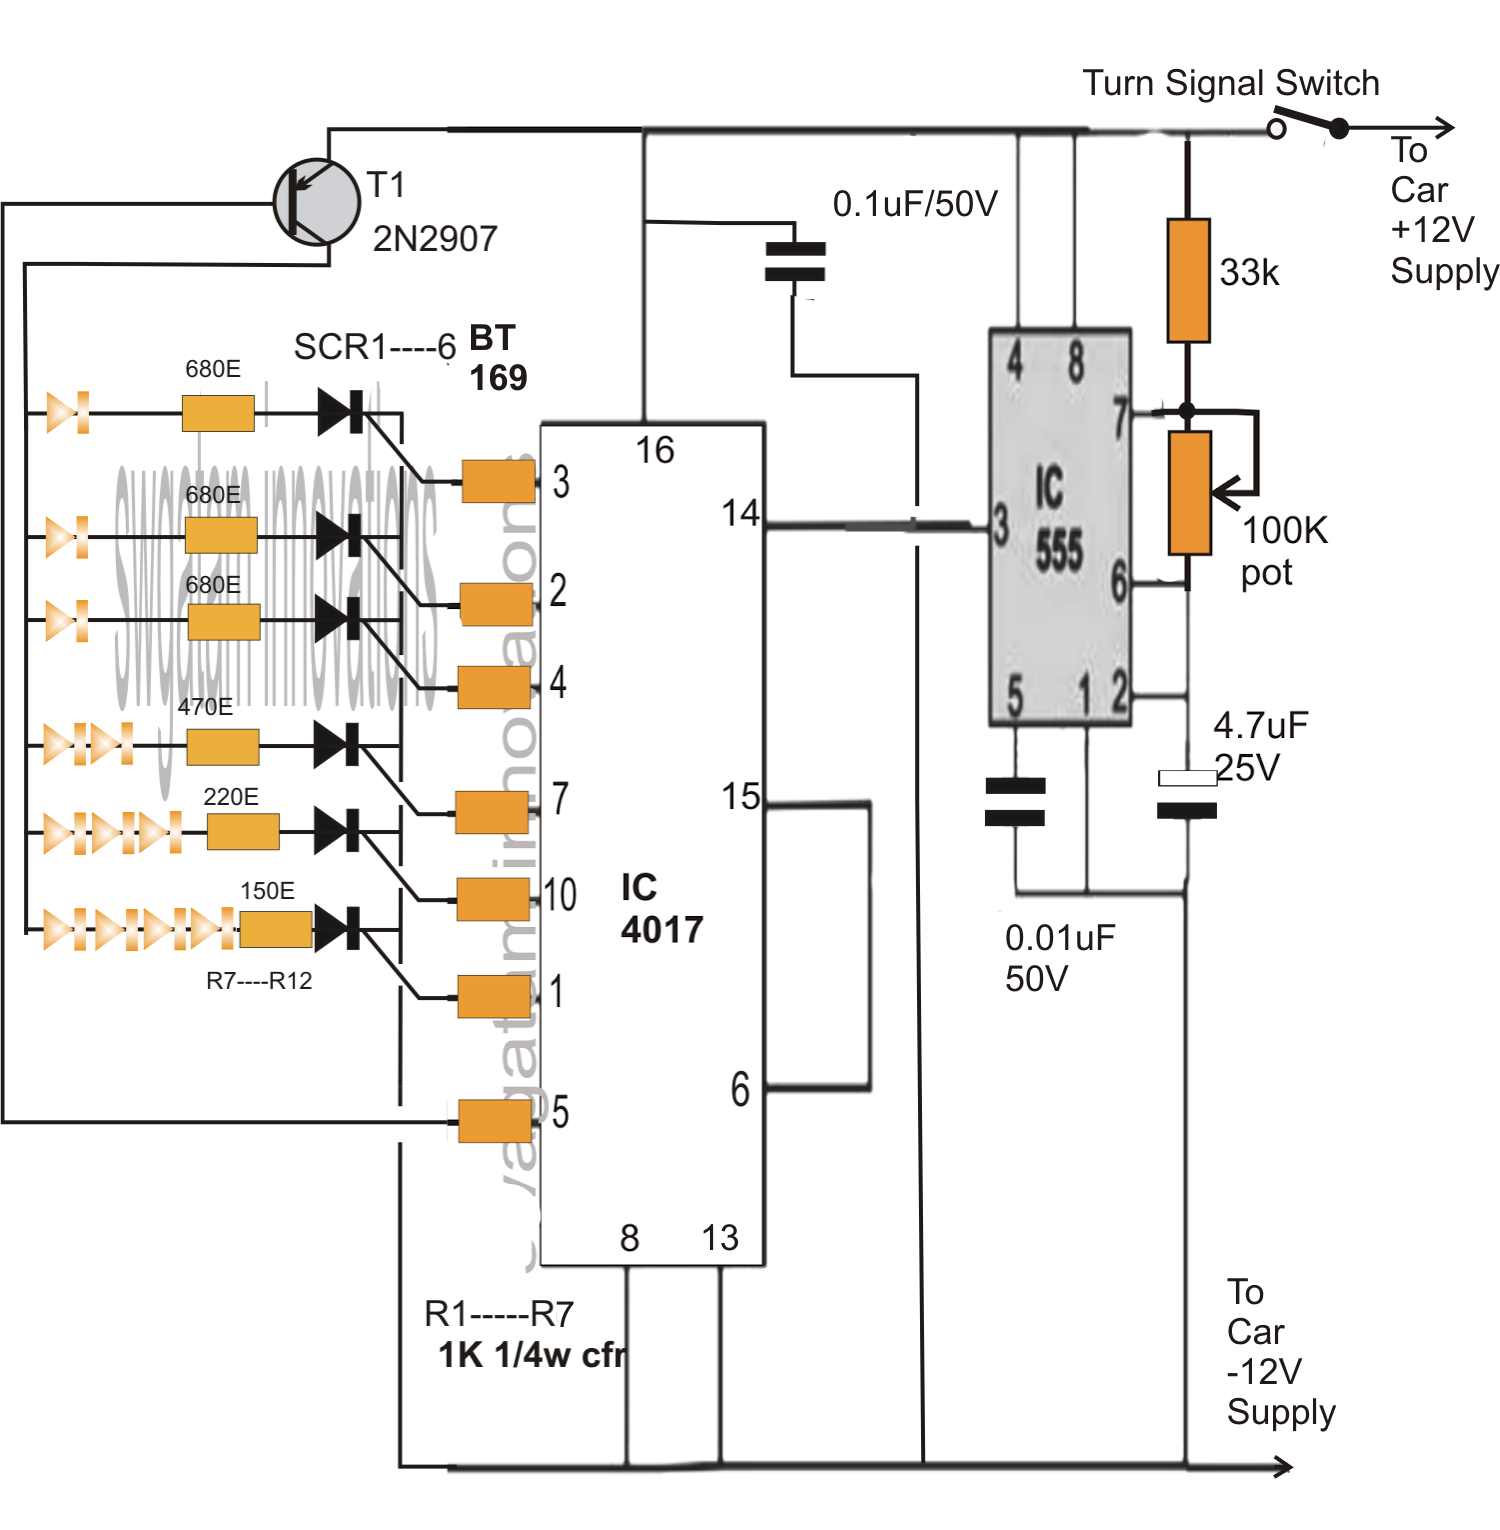 Sequential Bar Graph Turn Light on wiring diagram turn signal